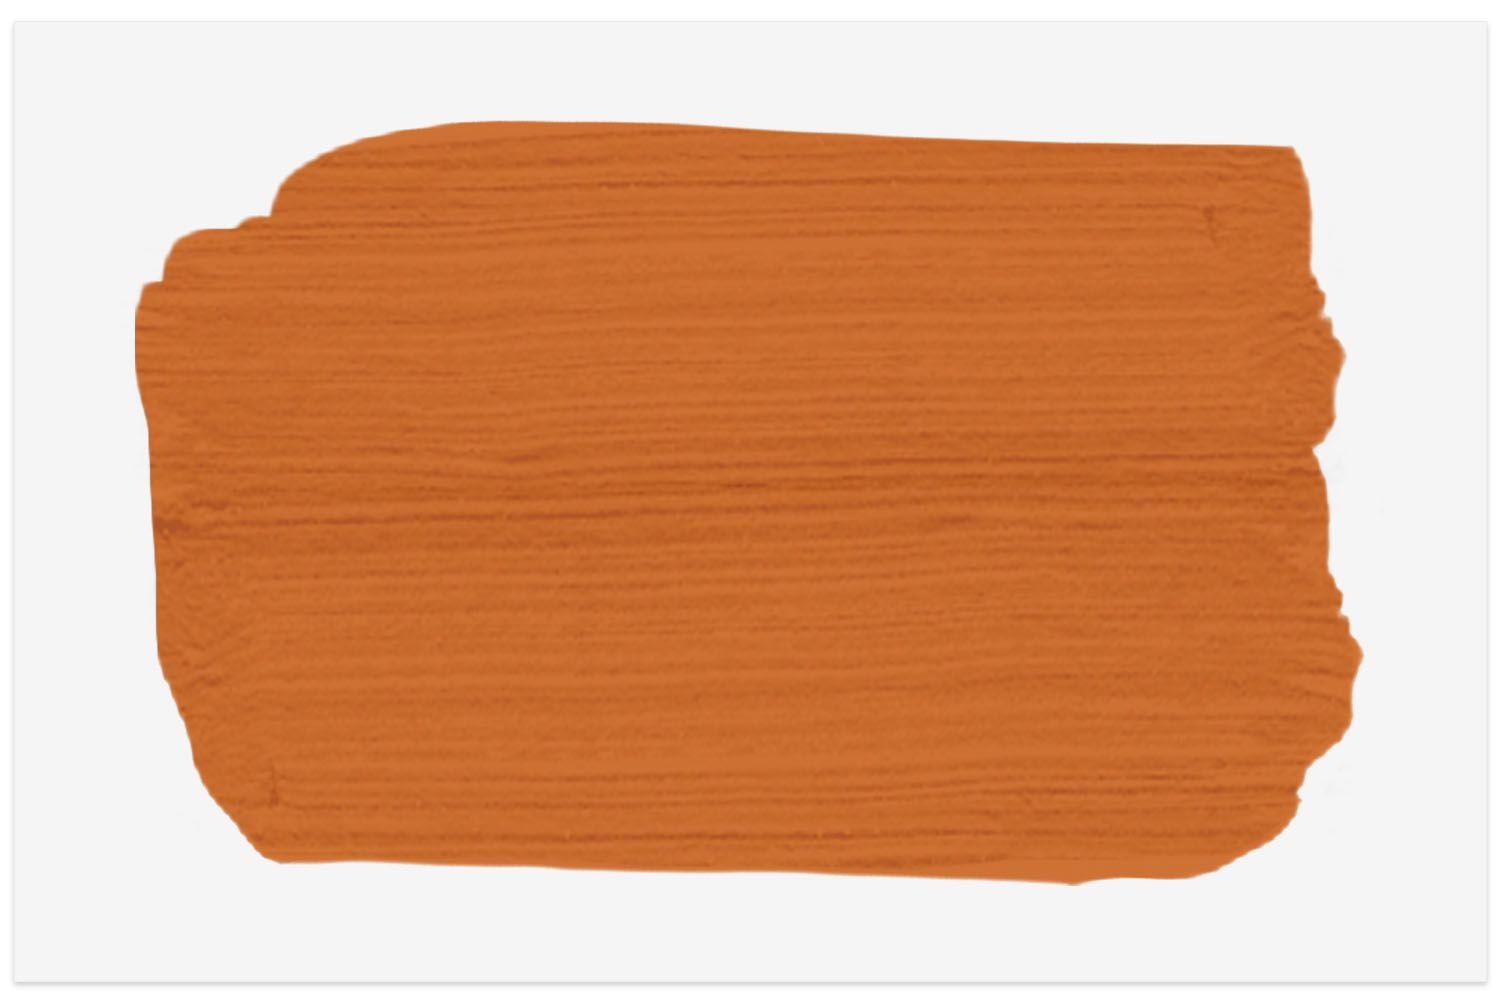 Buttered Yam paint swatch from Benjamin Moore